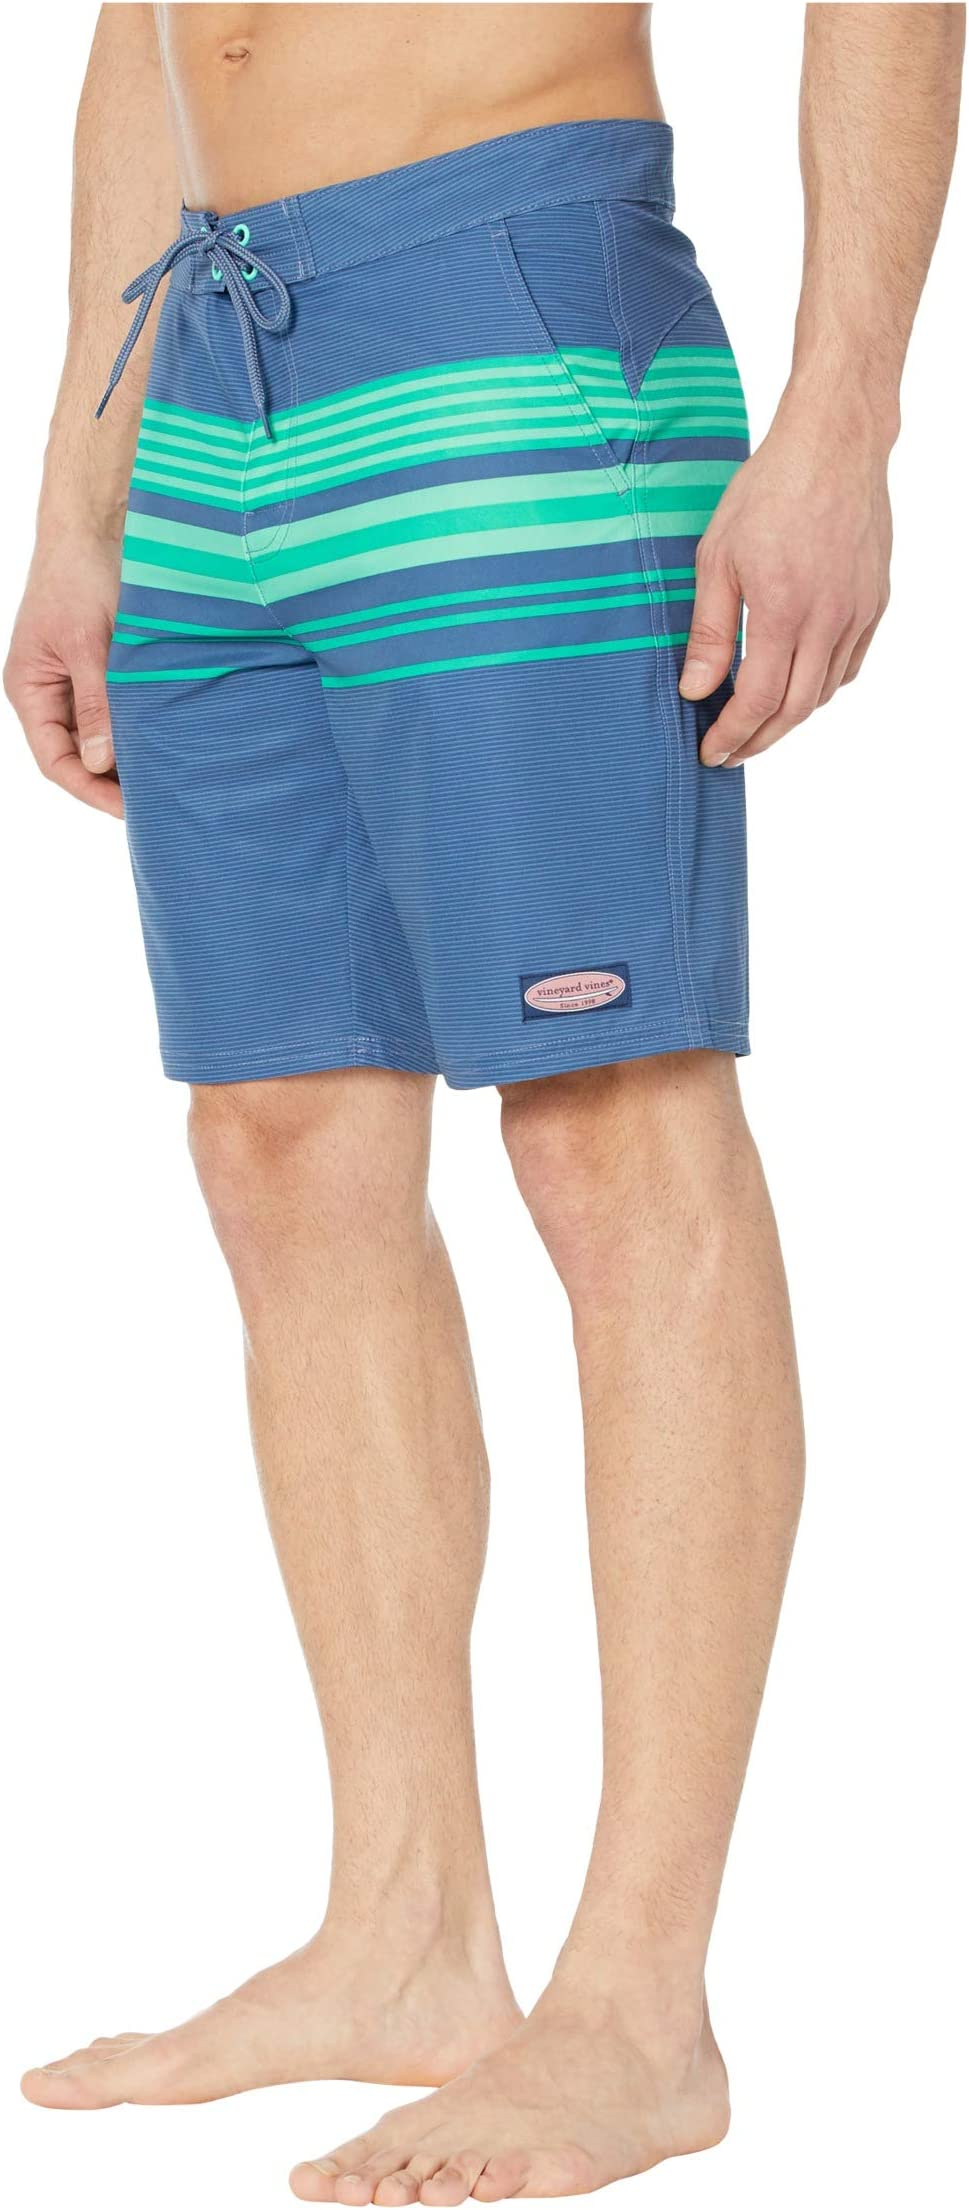 Vineyard Vines Striped Boardshorts Lxj46